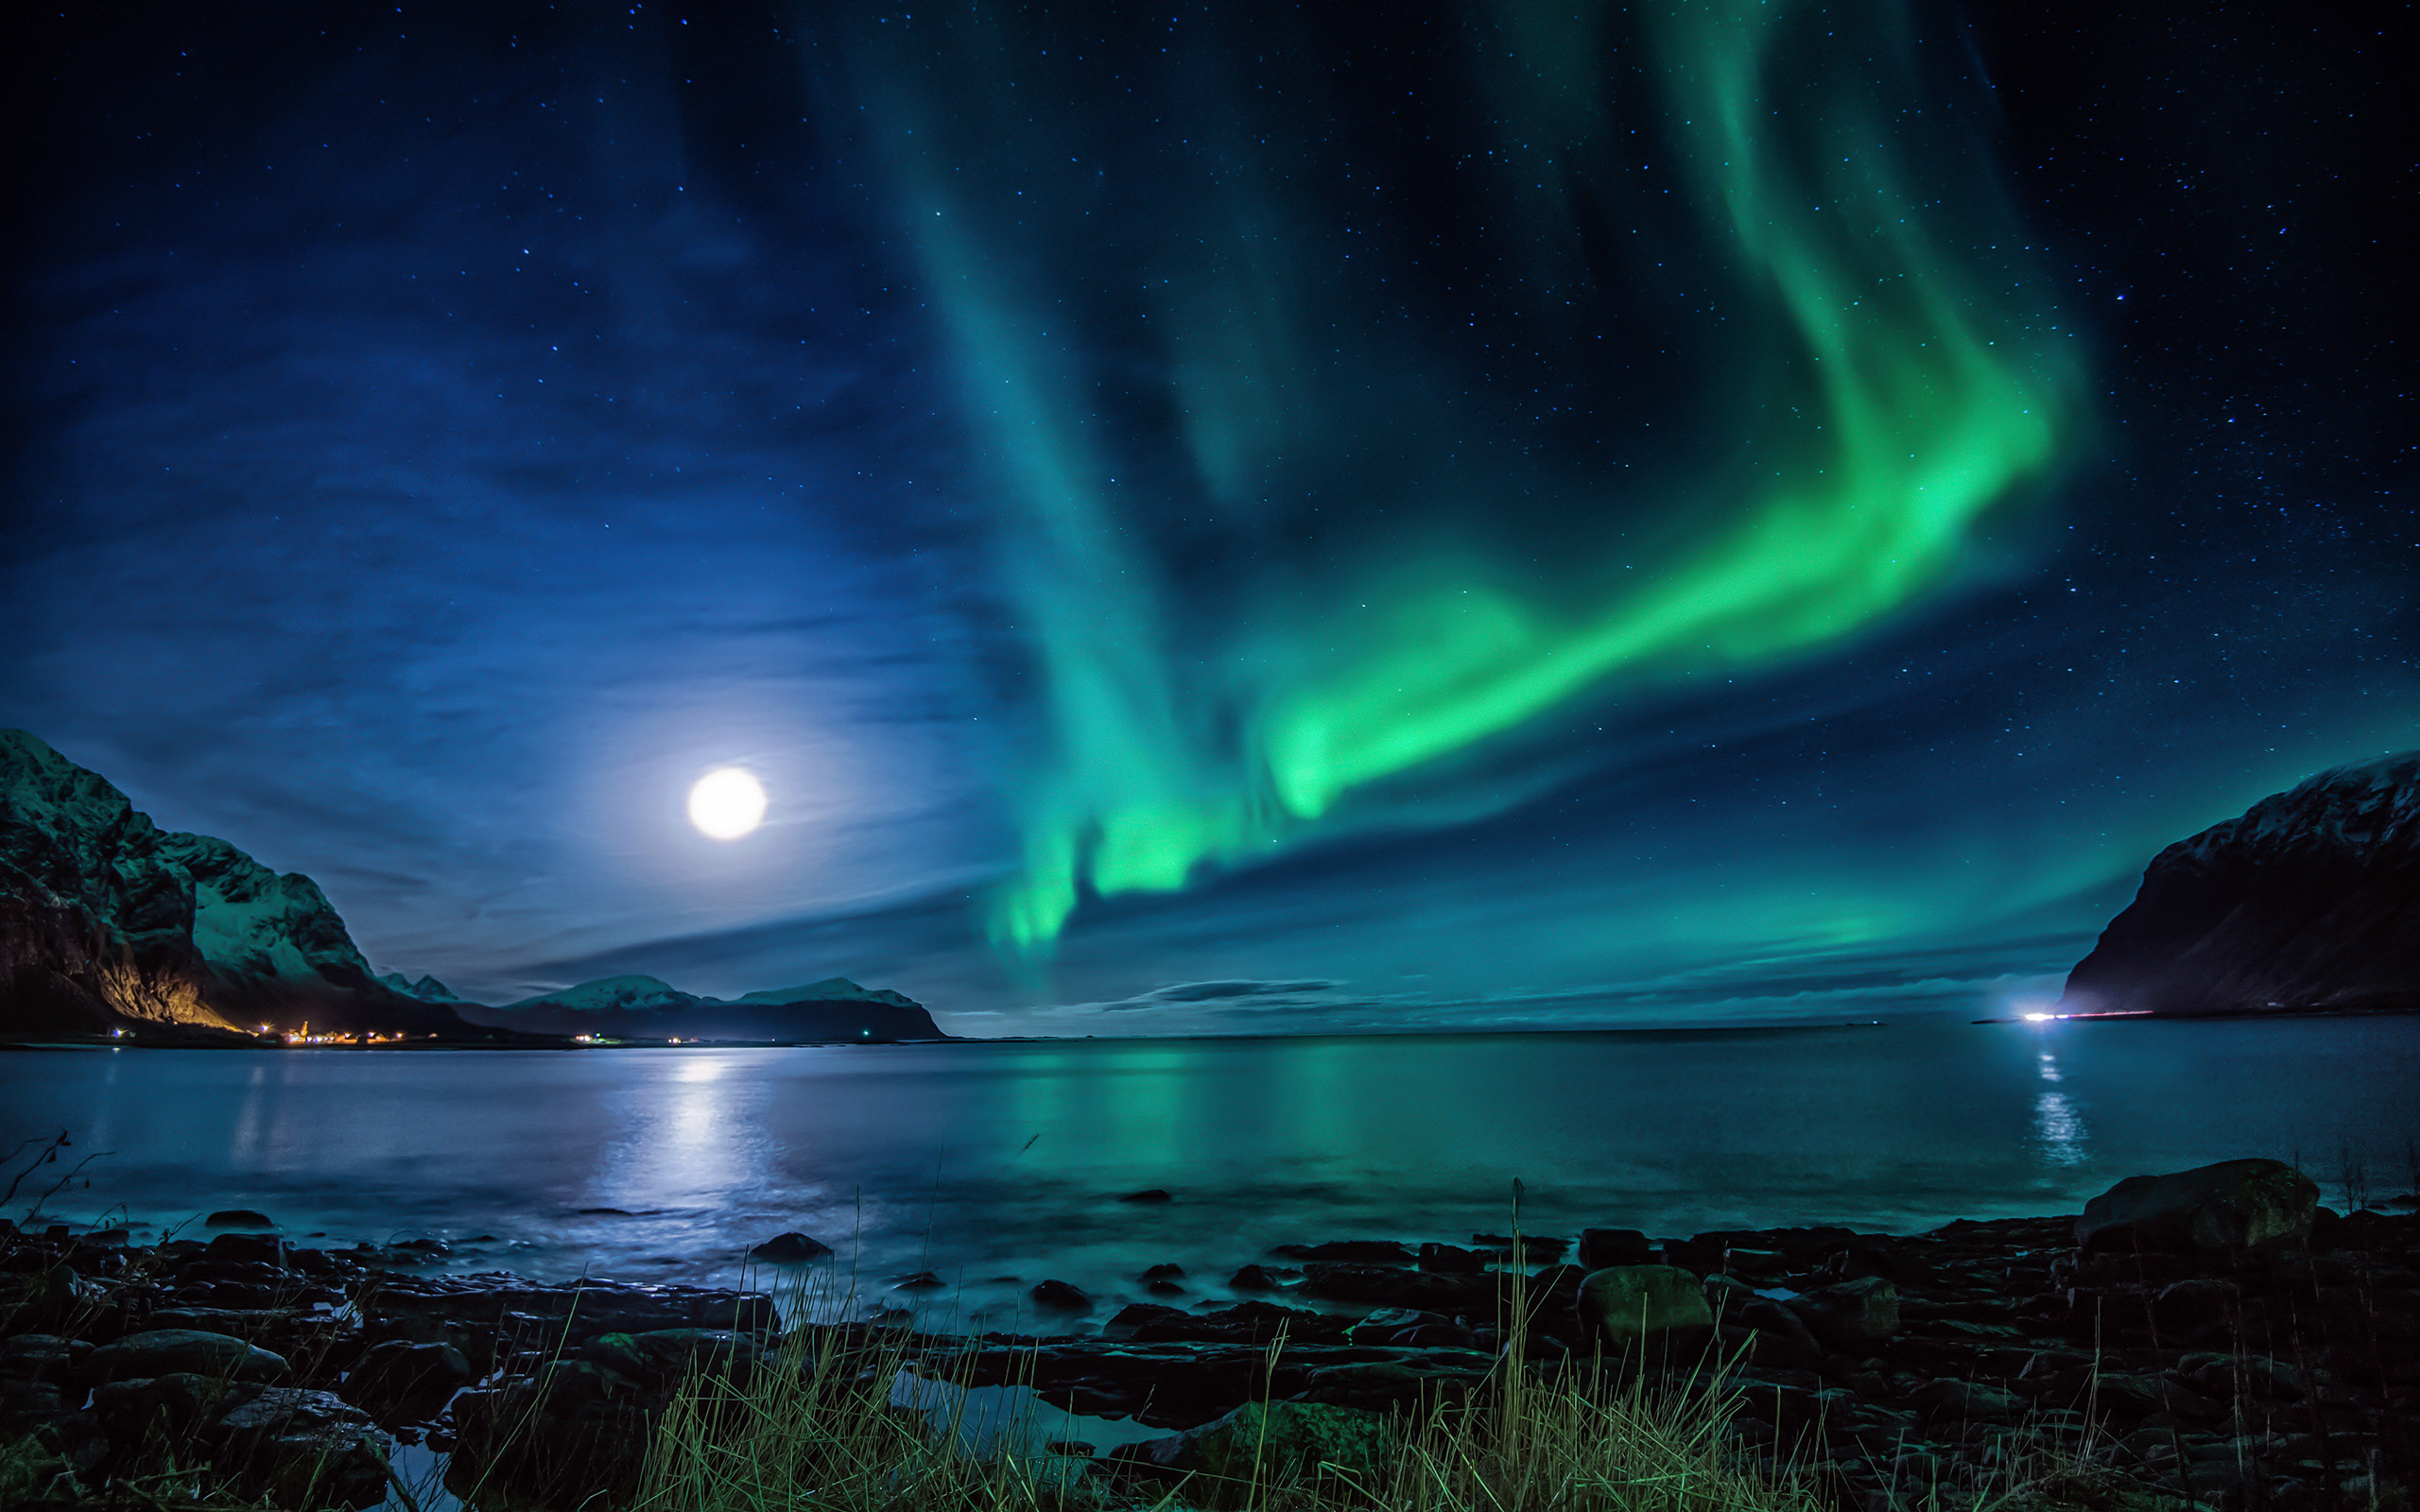 Aurora Borealis Moon Night, HD Nature, 4k Wallpapers